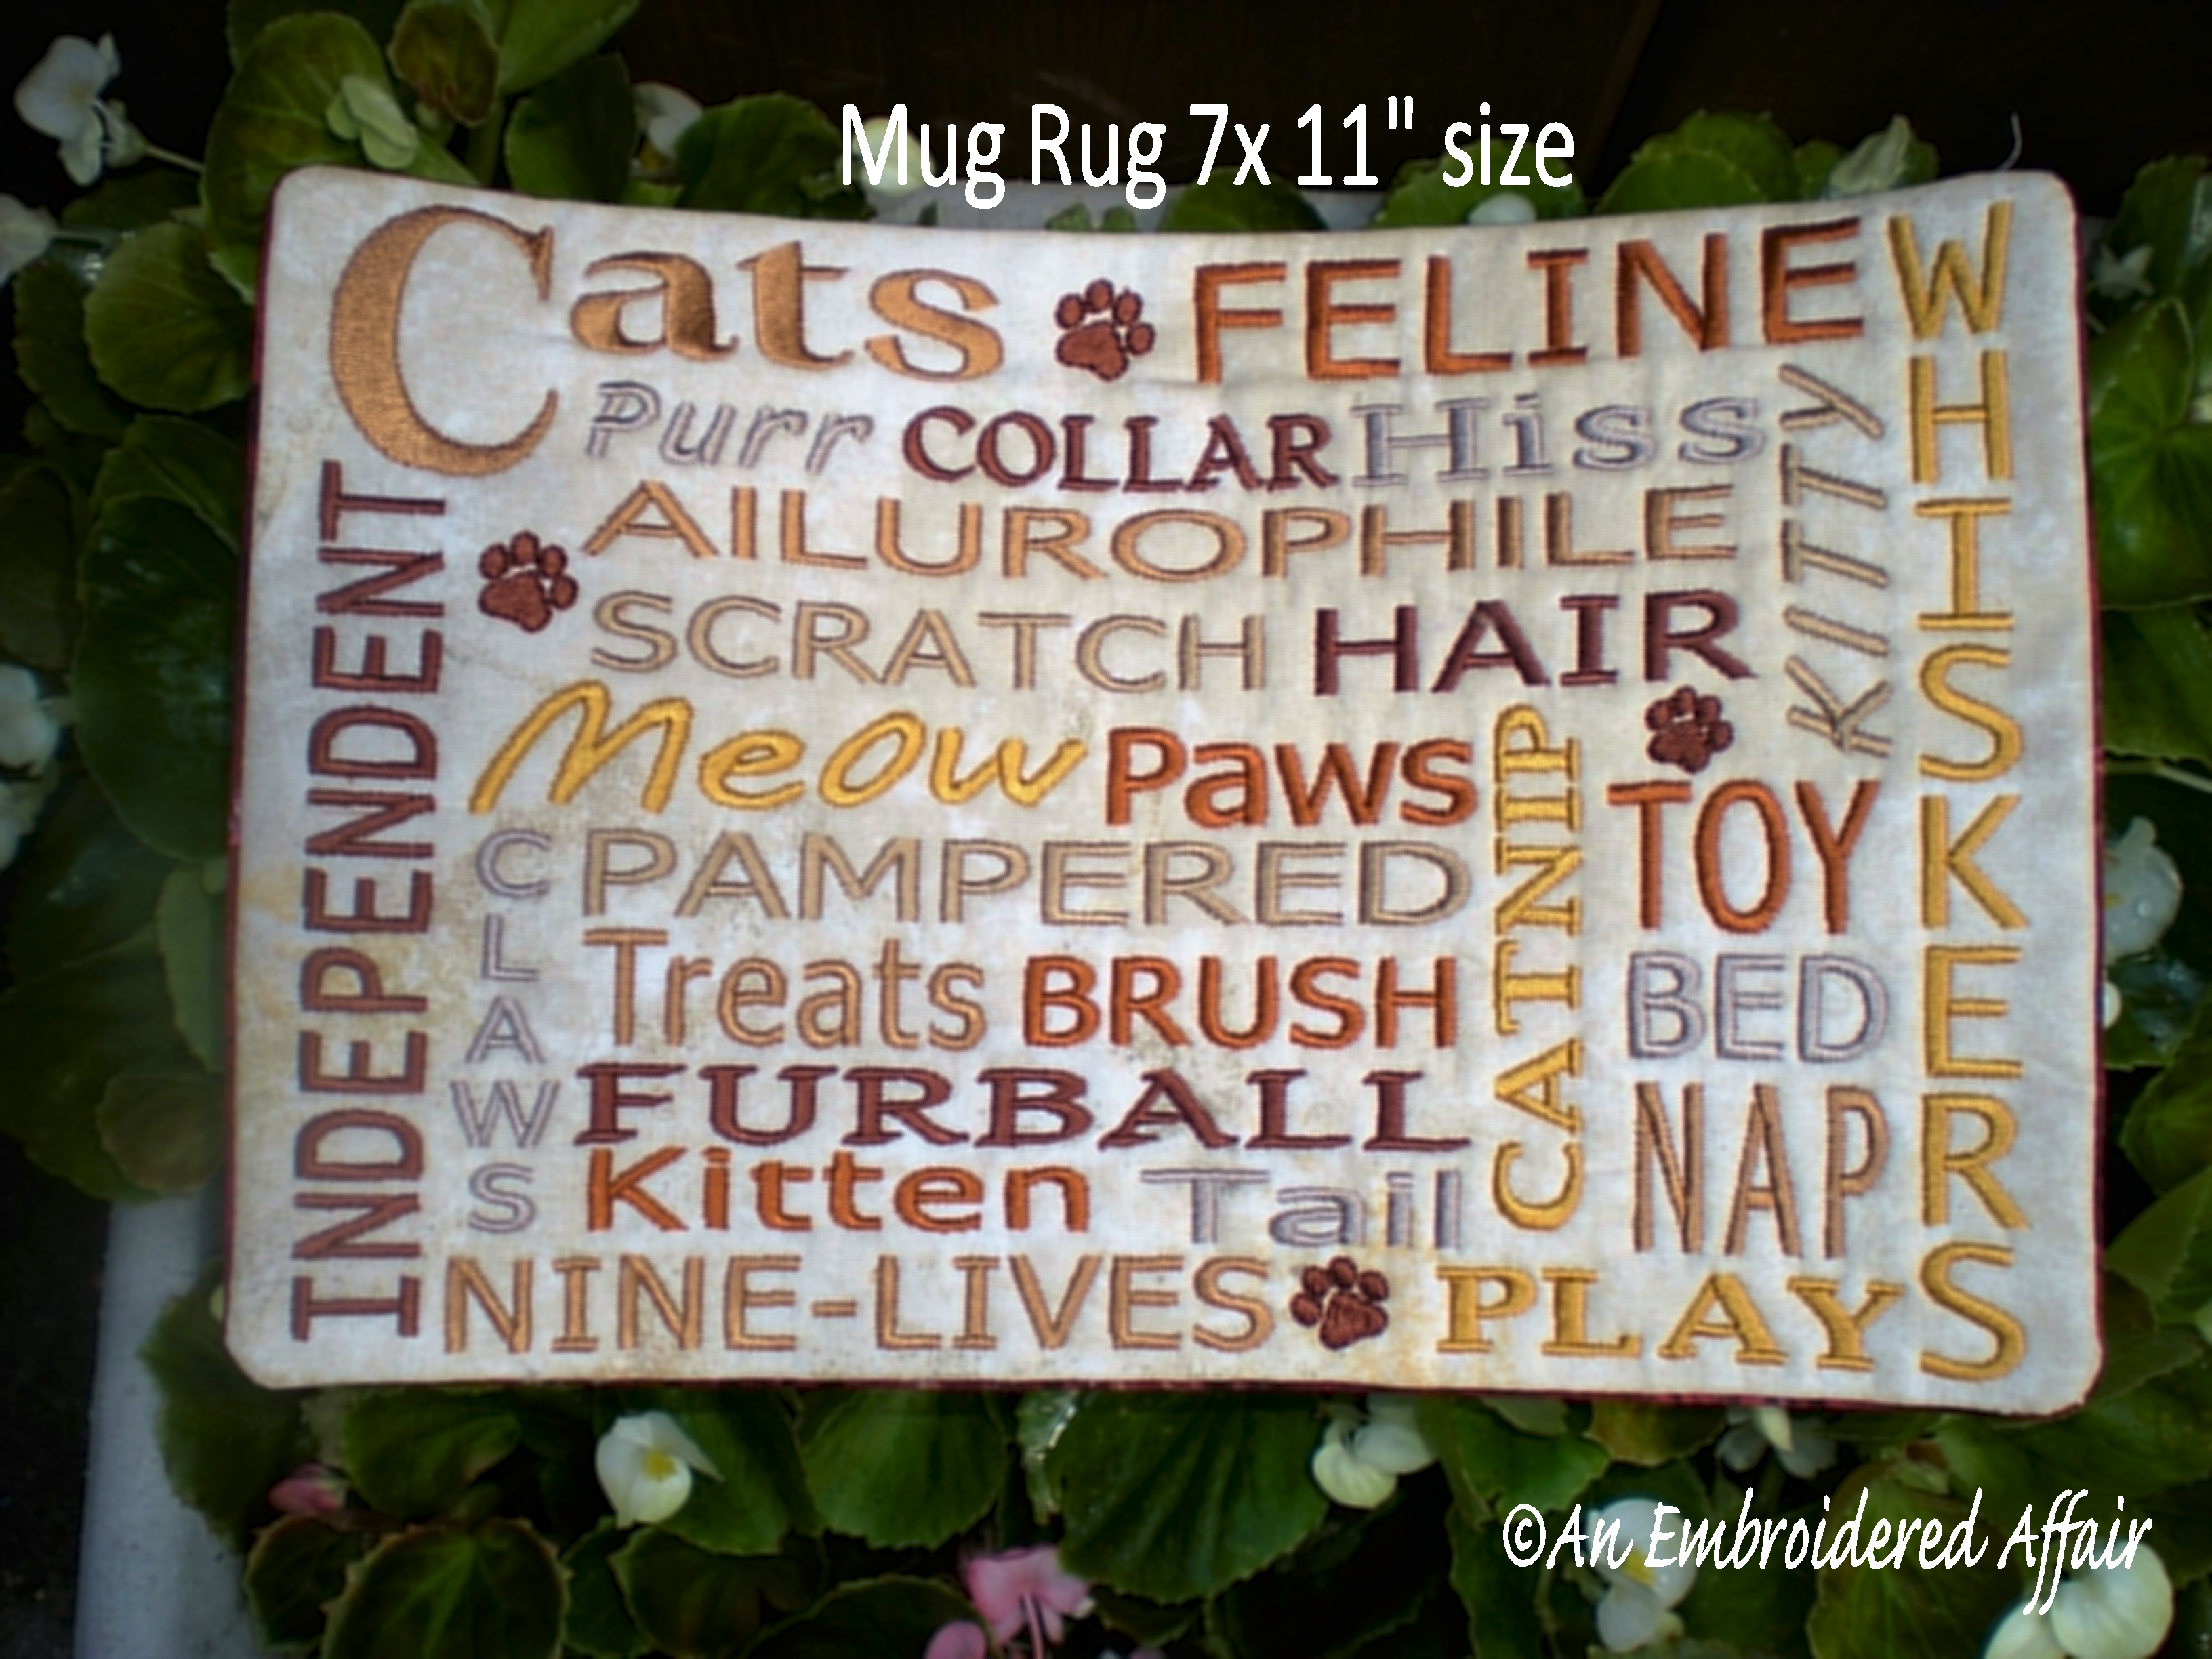 Cat Words and Mug Rugs design.